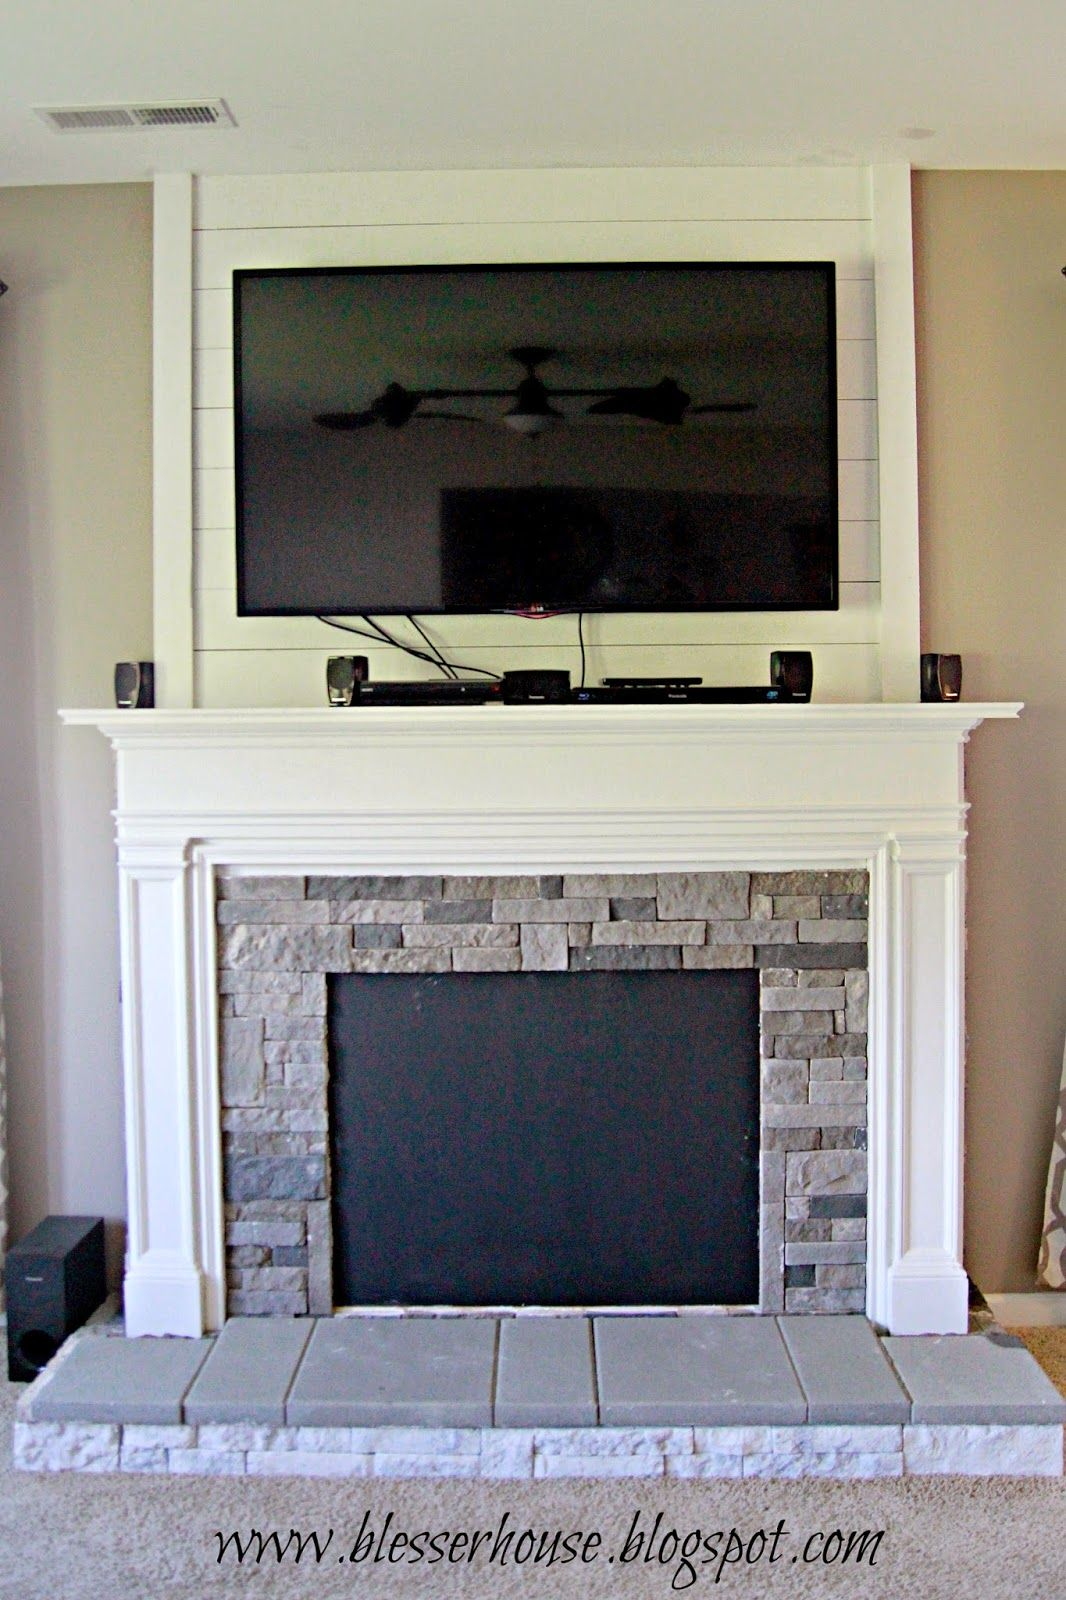 Build A Fireplace Diy Faux Fireplace Entertainment Center Part 3 | Home